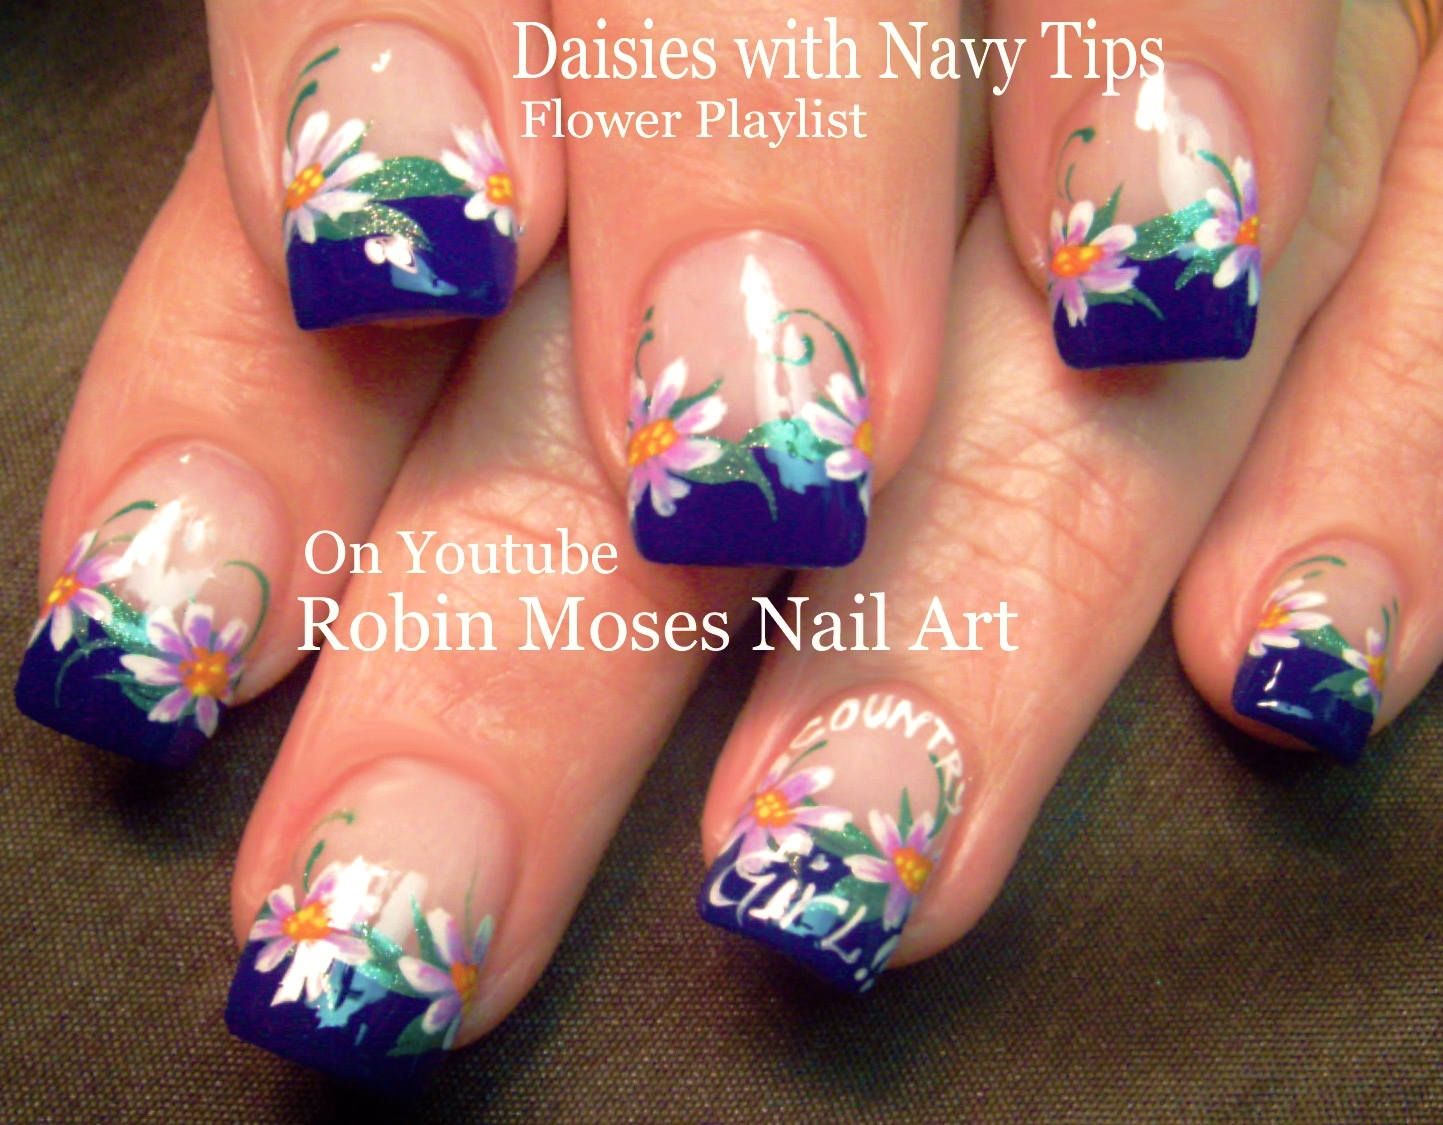 Robin Moses Nail Art: 42 Daisy Nail Art Designs in my New